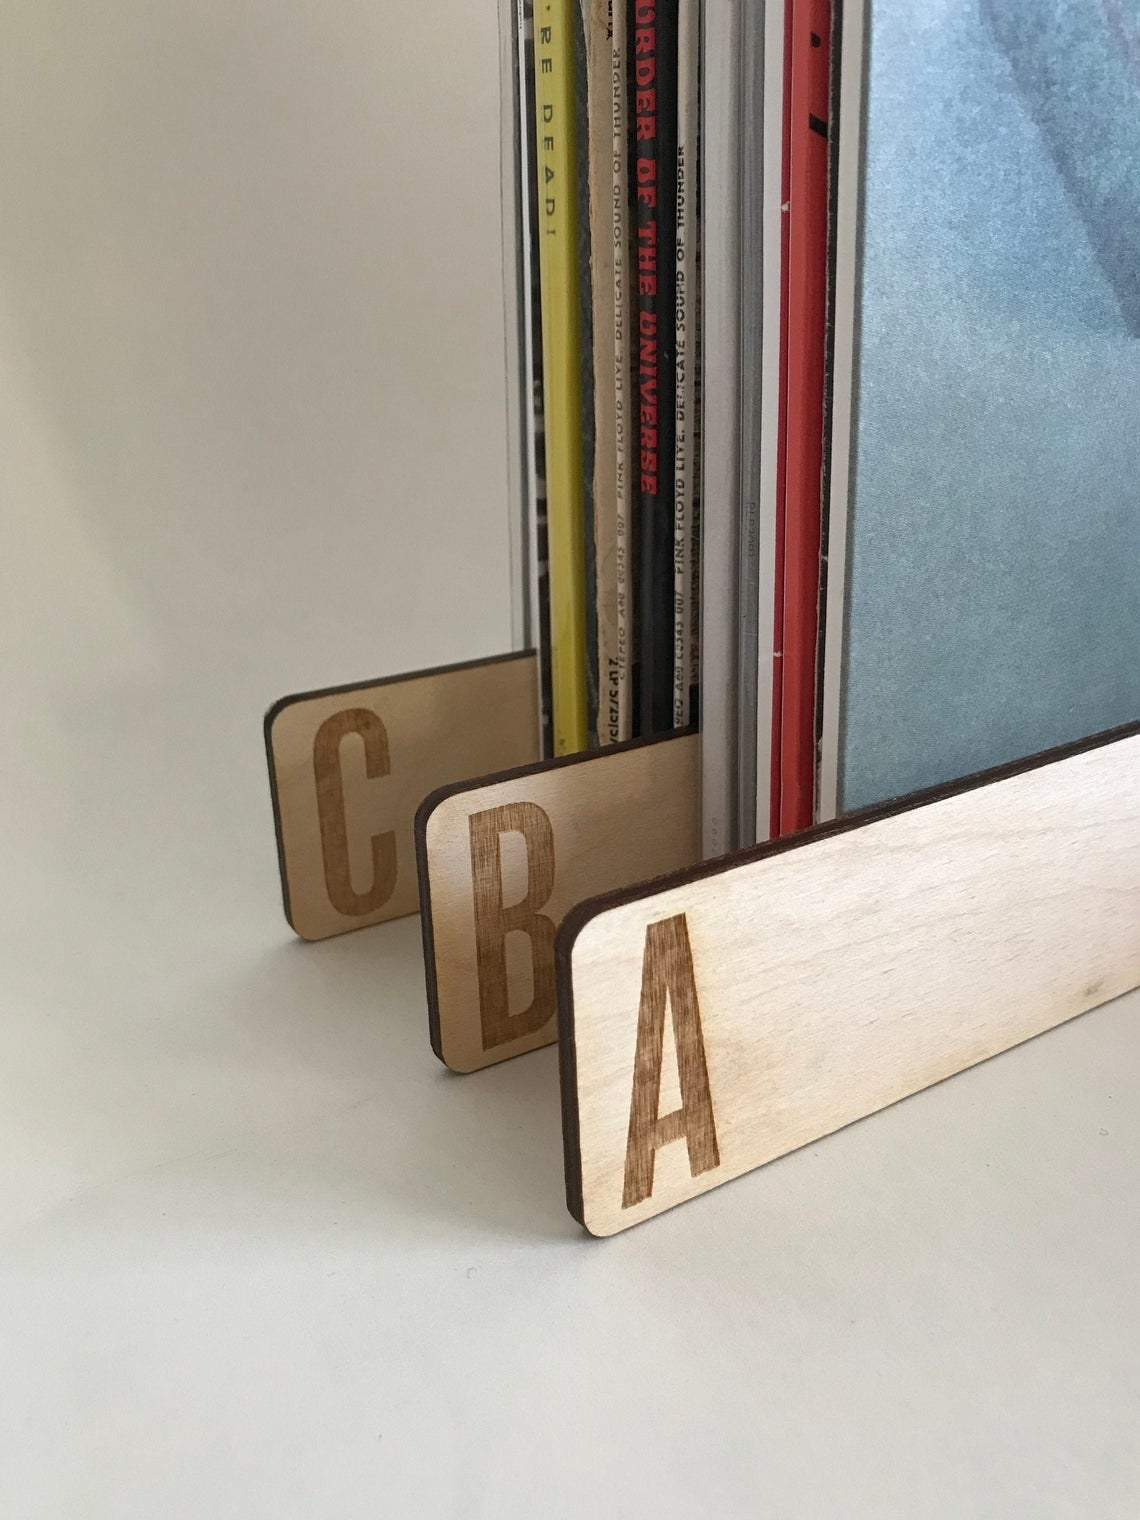 A stack of records with three wooden dividers with engraved letters on them